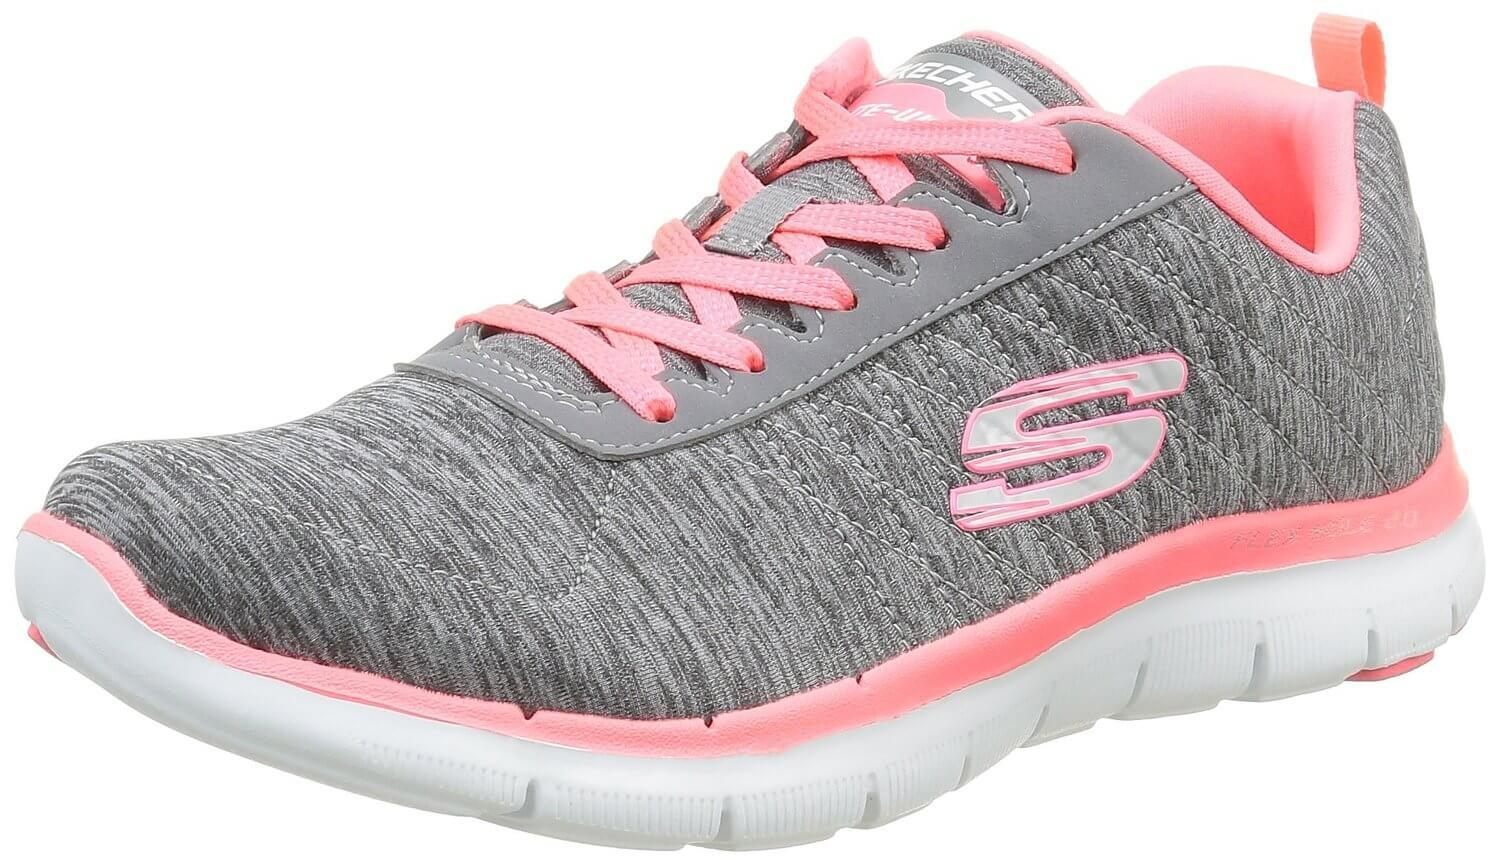 skechers new design 2016